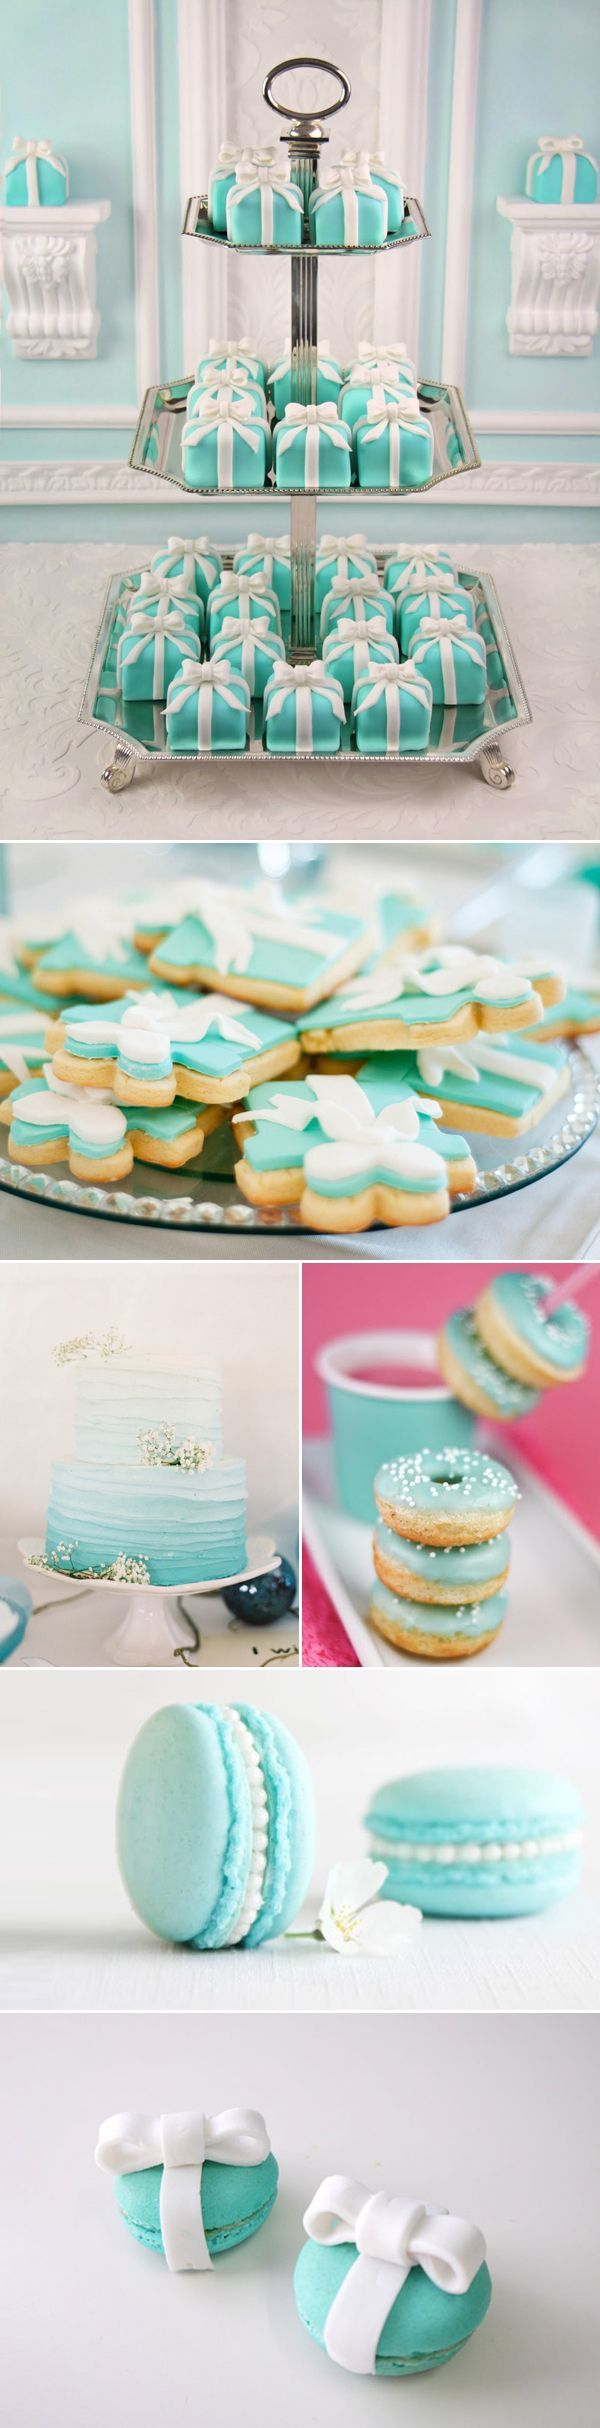 """What are some brand names that pop up when you think about weddings? Tiffany & Co is definitely one of our very first answers. Why are women so obsessed with this brand? Well, nothing says classic elegance and style quite like Tiffany's, and """"Tiffany Blue"""" has become a popular theme color for modern weddings . …"""